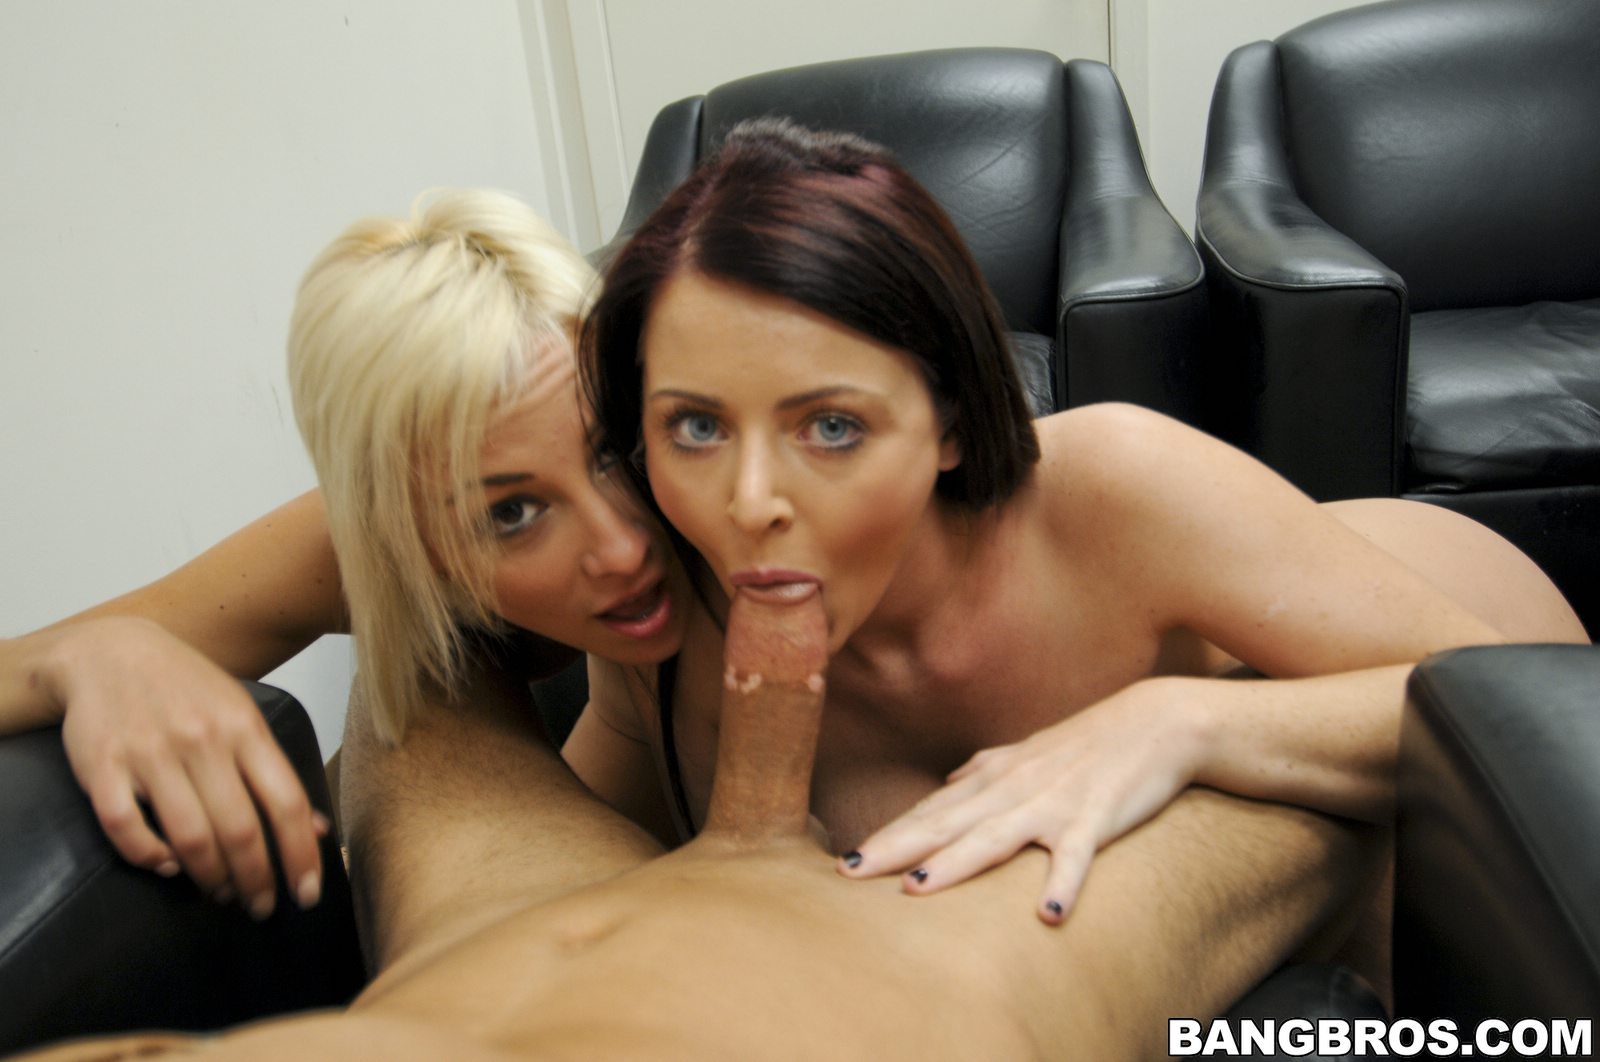 Hot double blowjob